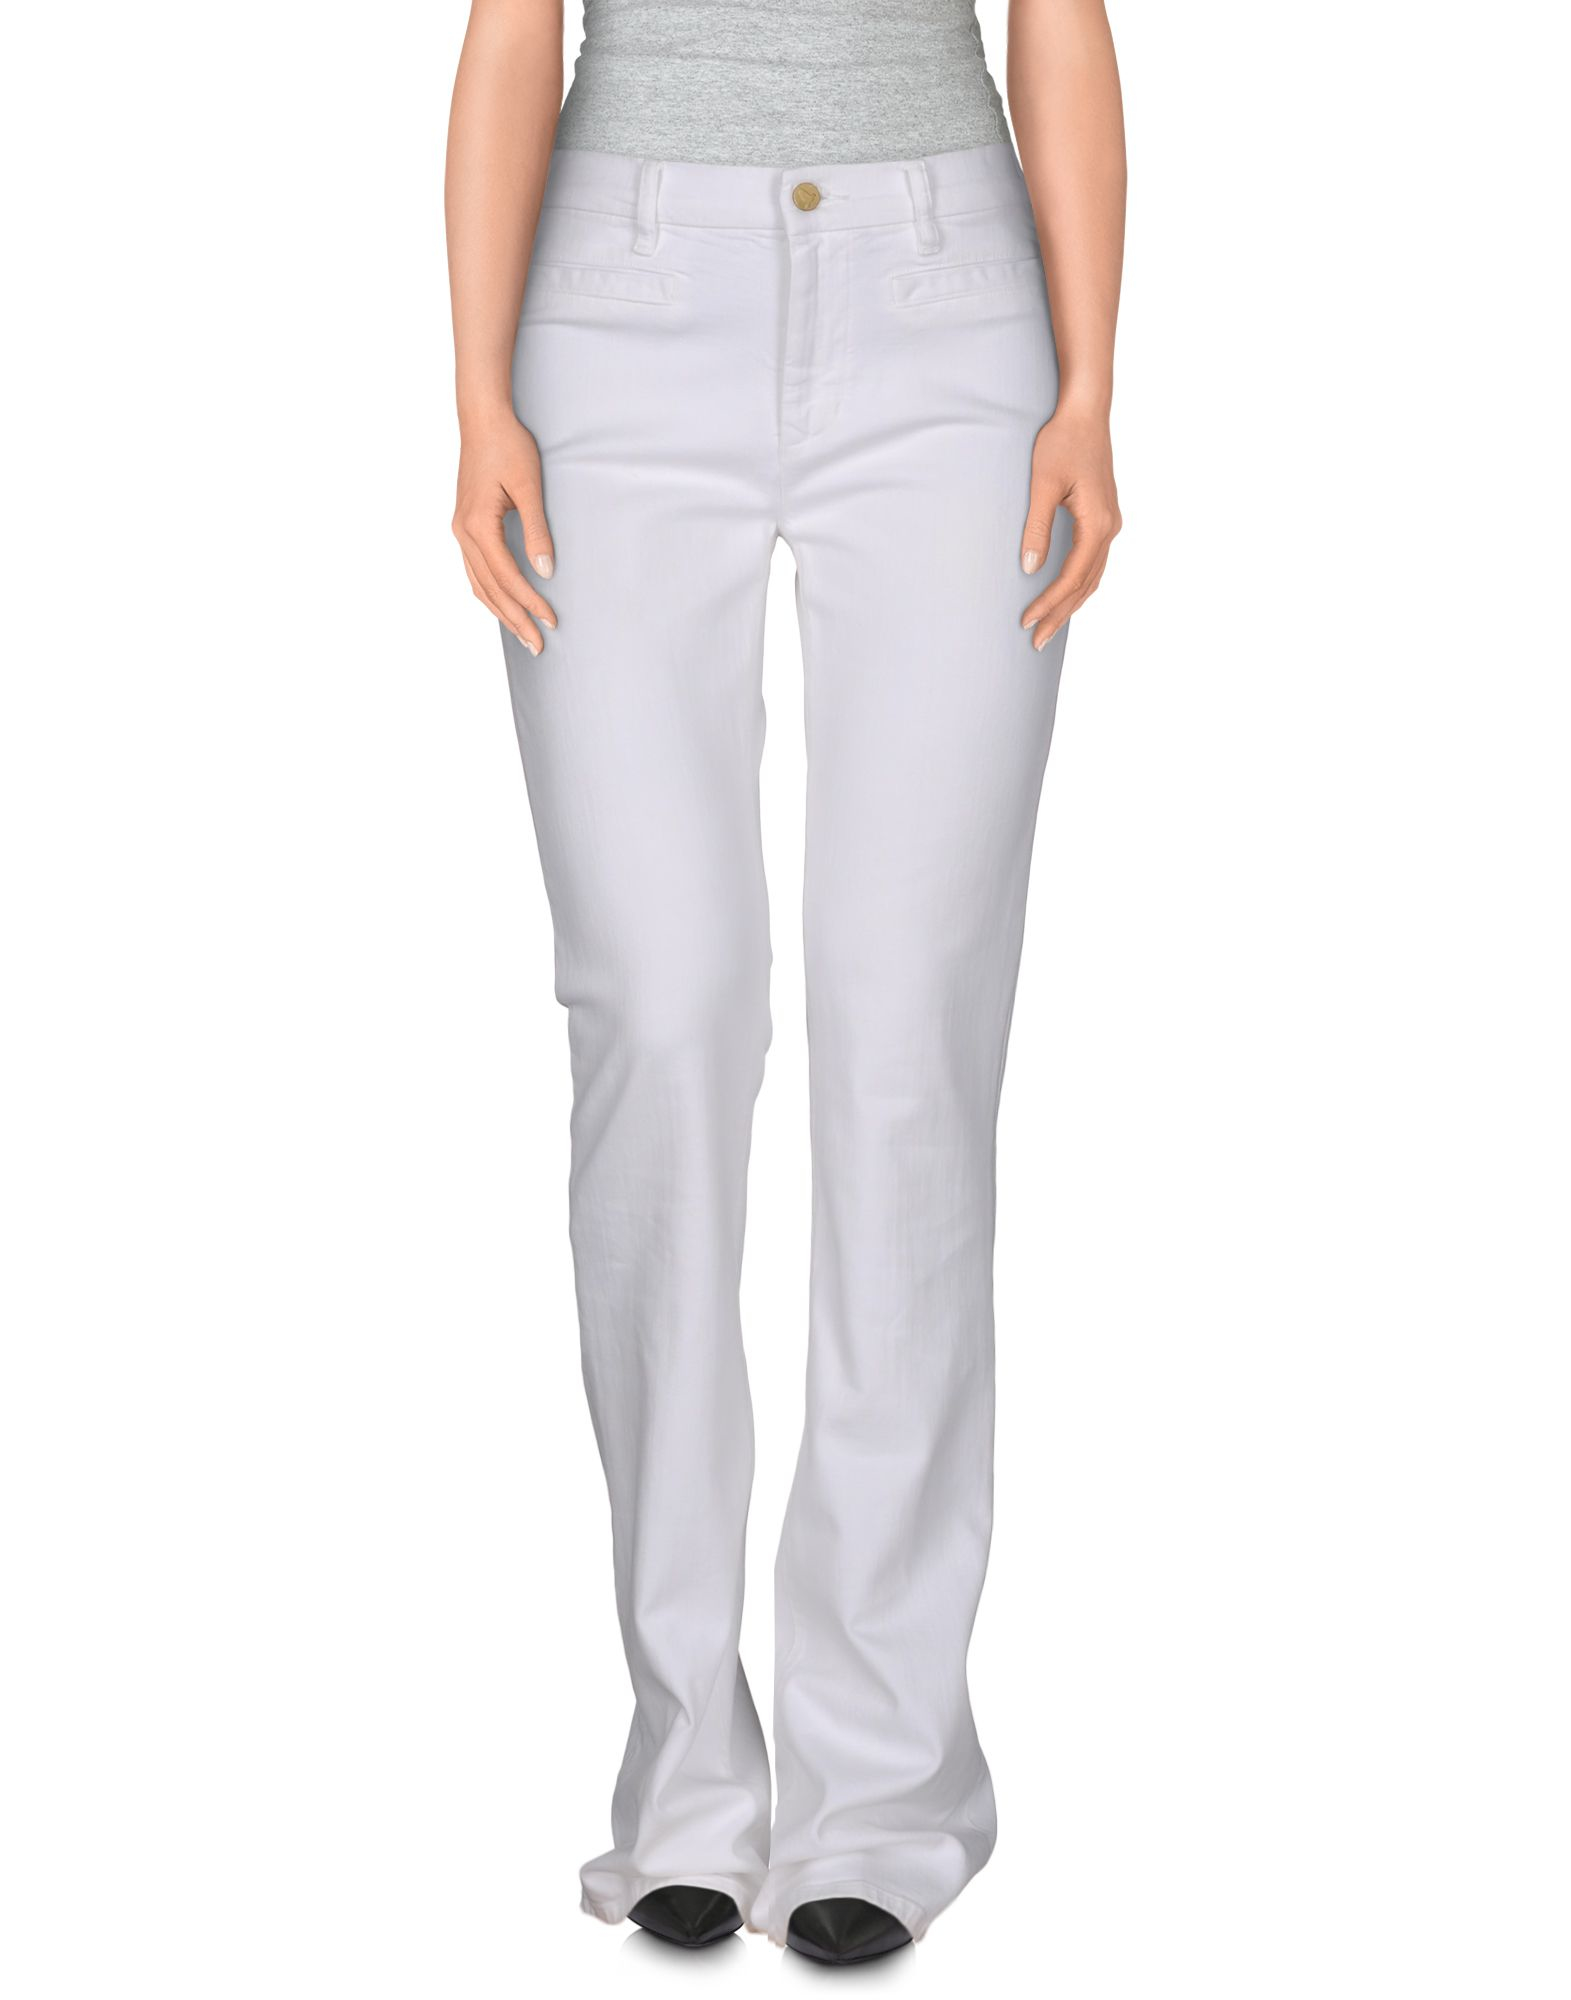 Mih jeans Denim Trousers in White